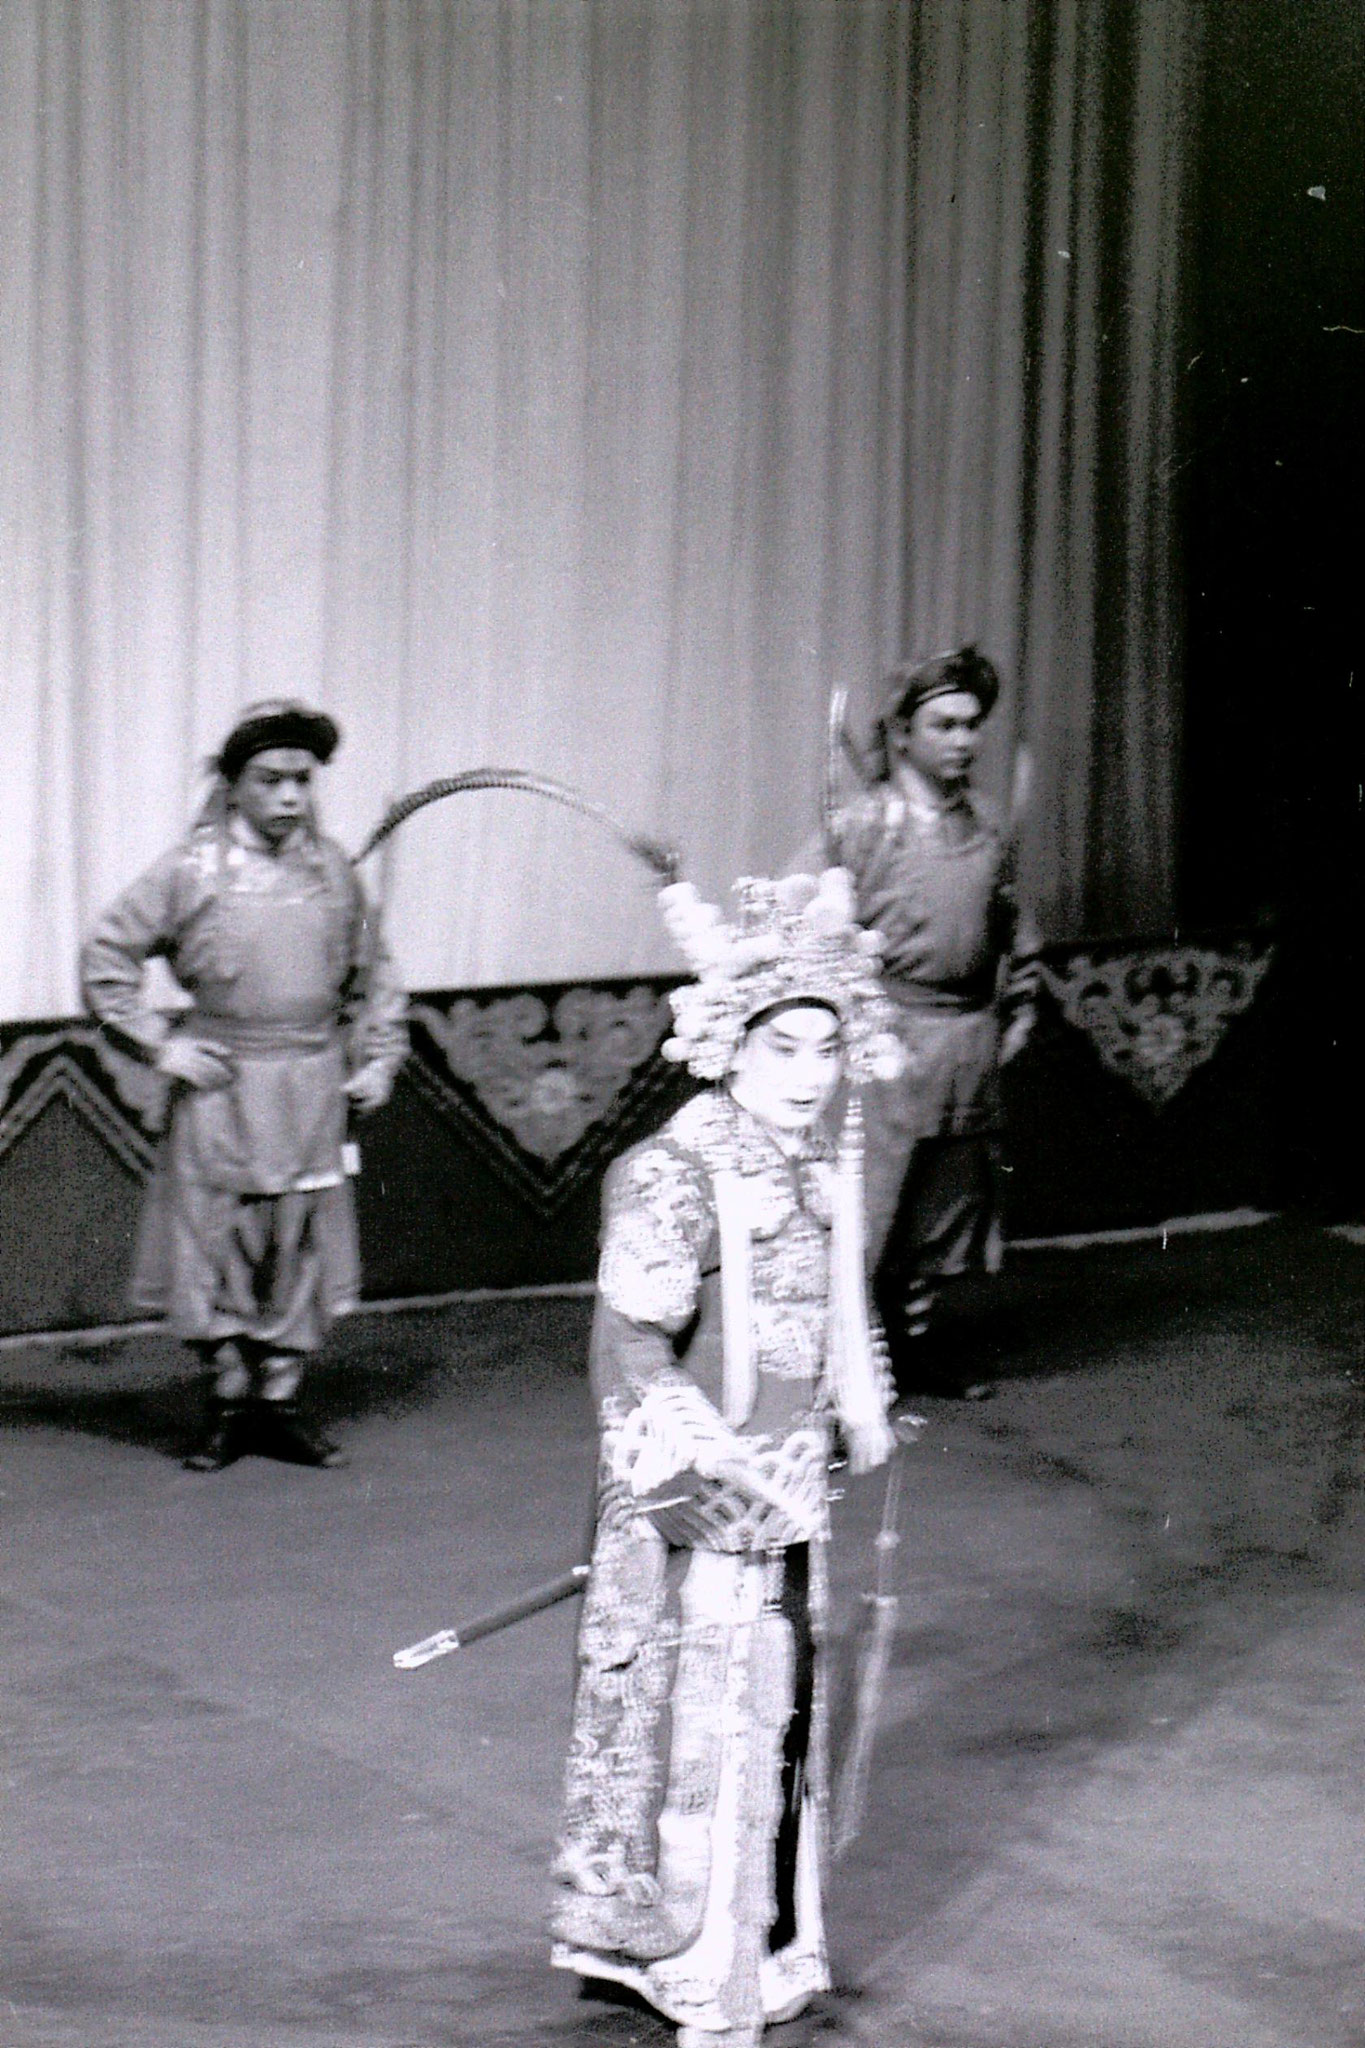 17/3/1989: 3: Beijing Opera at Chang'an Theatre